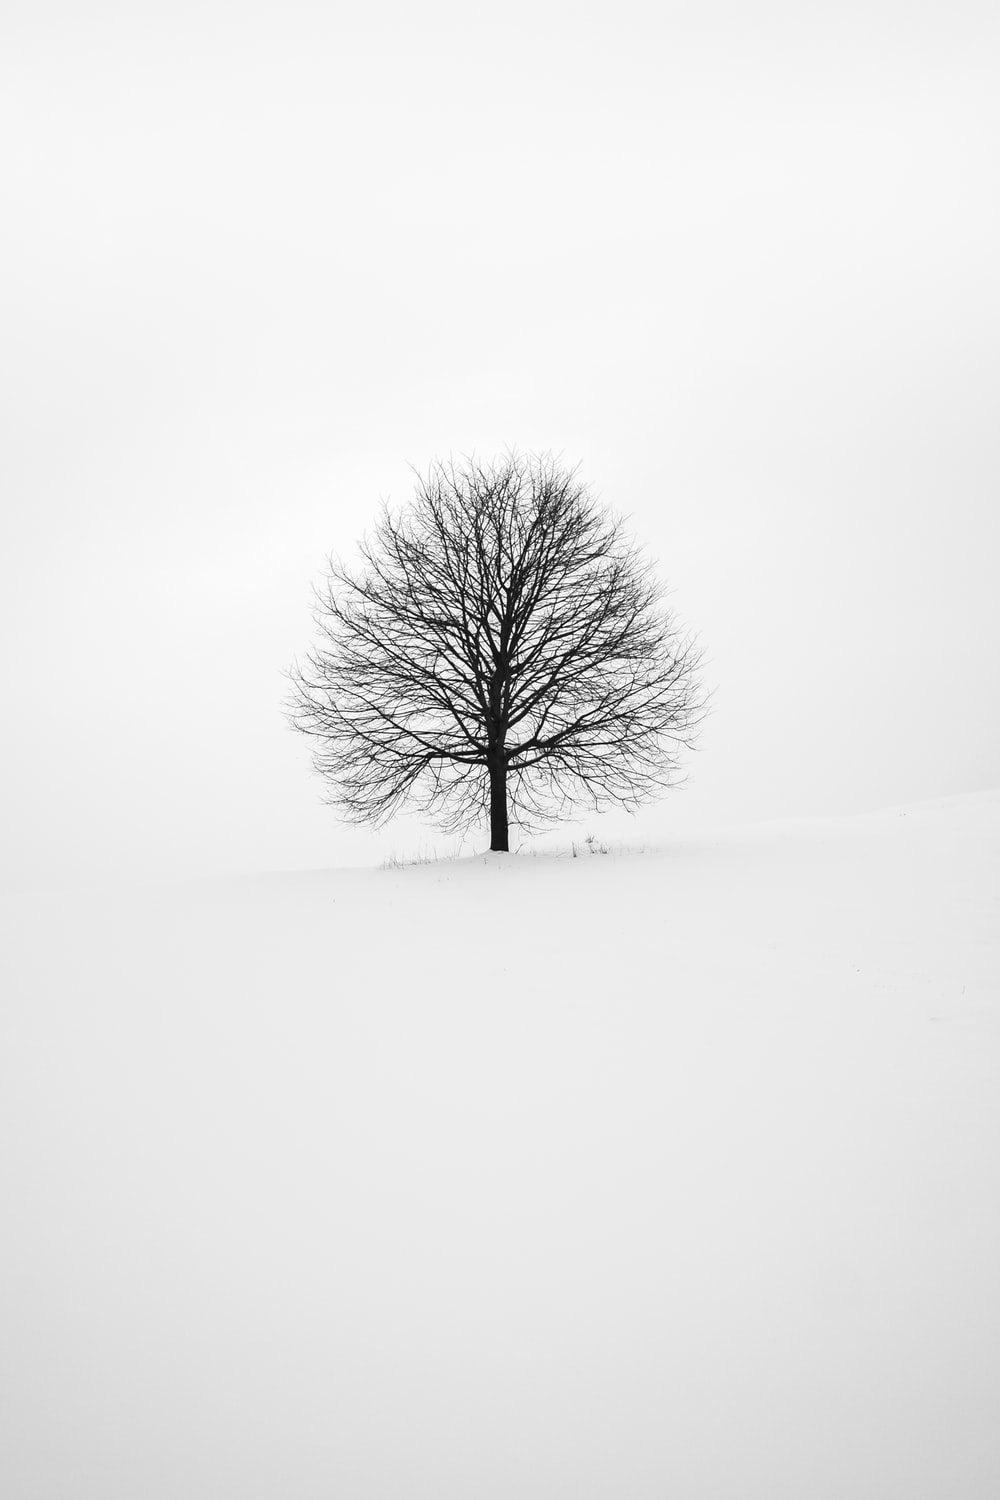 Black And White Wallpapers: Free HD Download [500+ HQ.